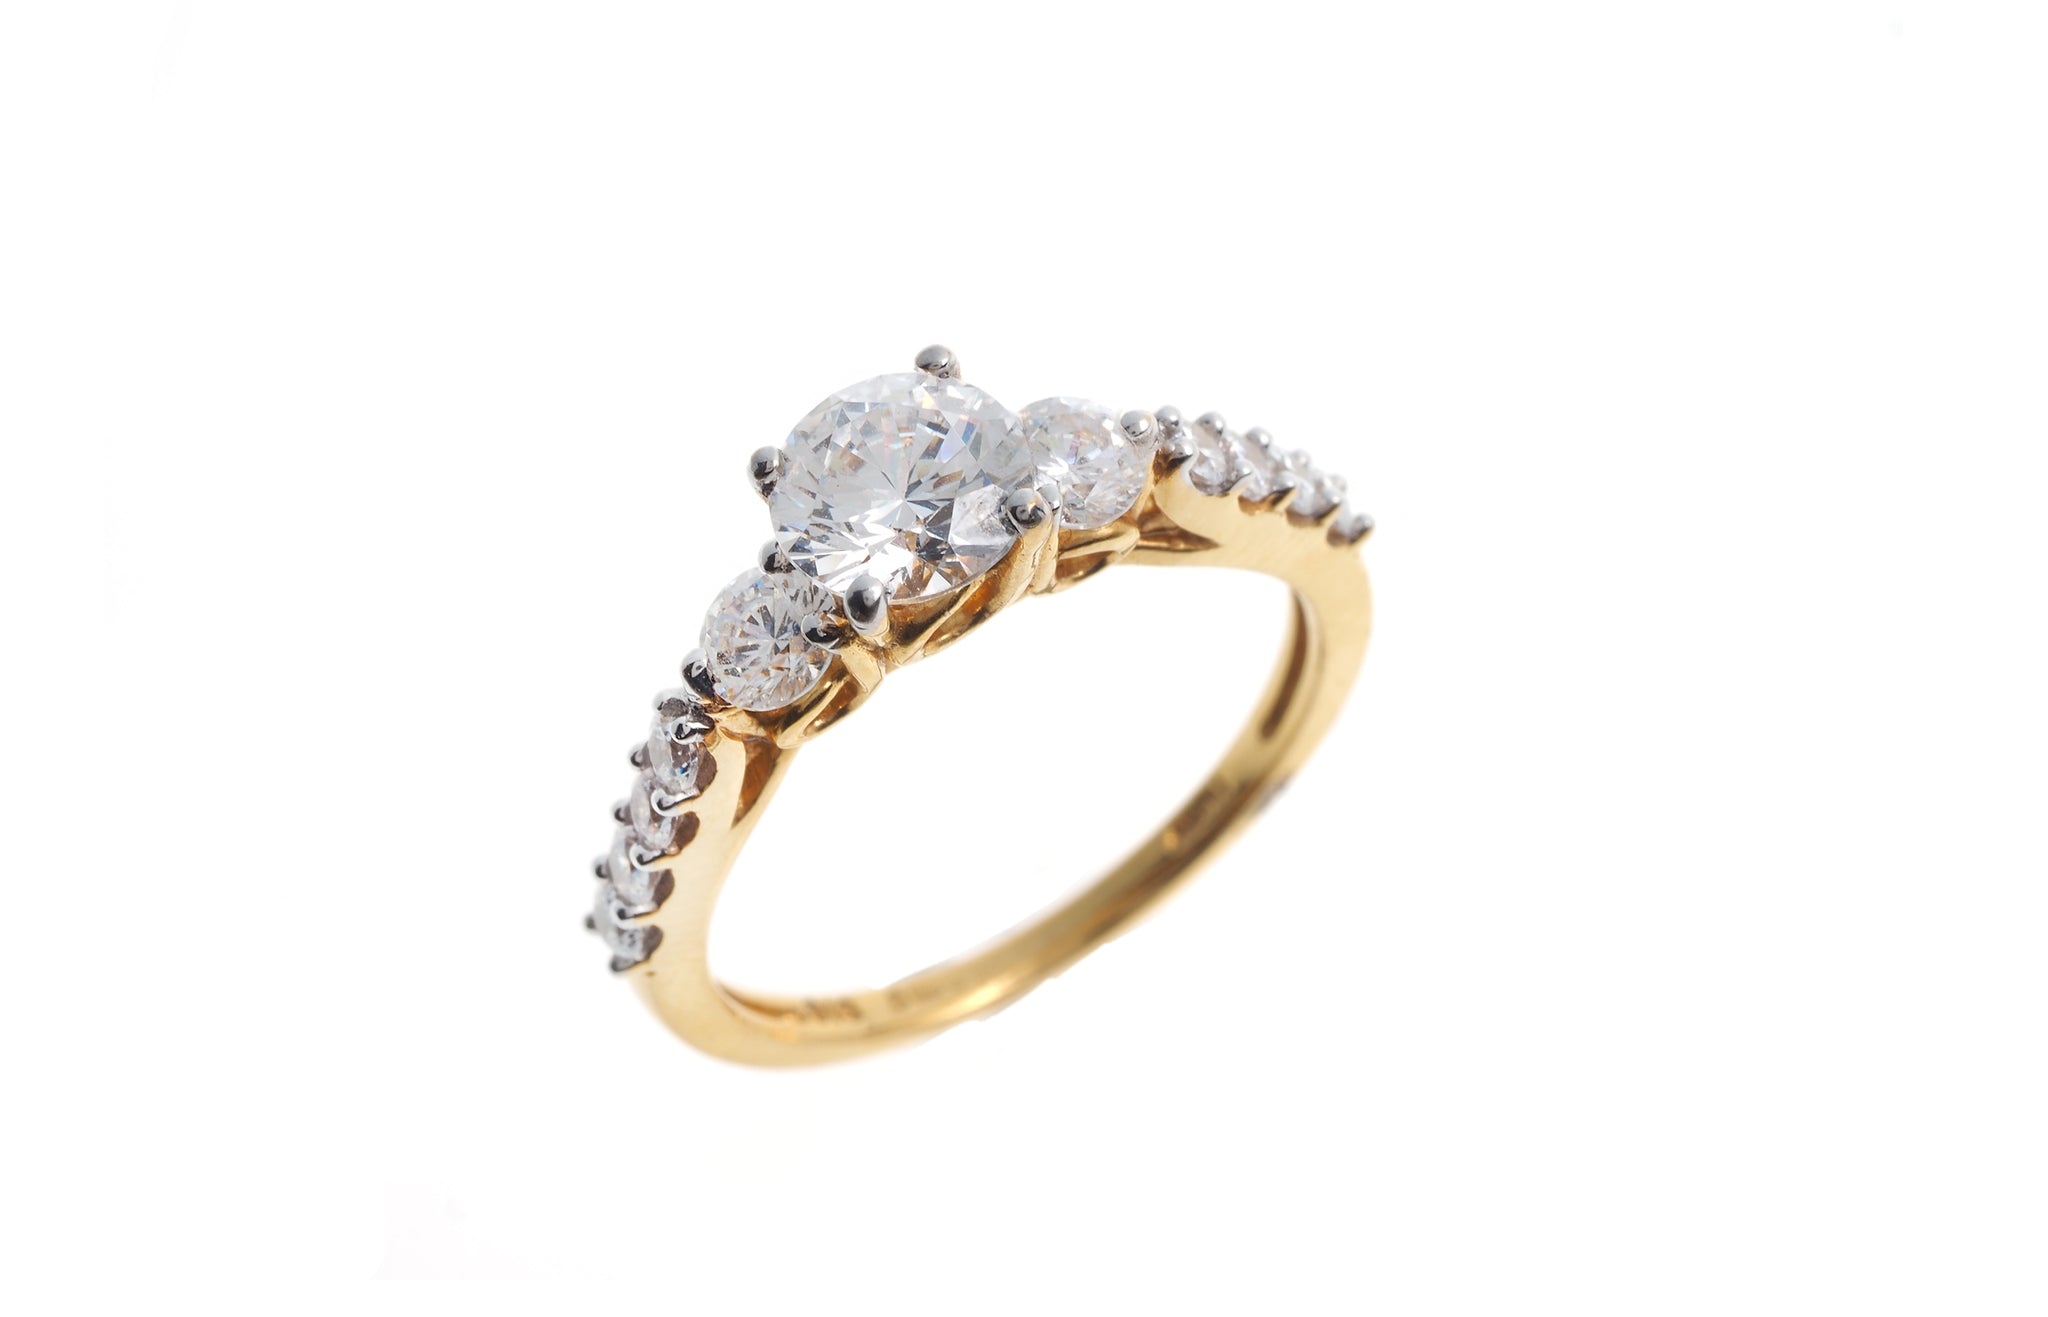 22ct Gold Cubic Zirconia Engagement Ring LR1465